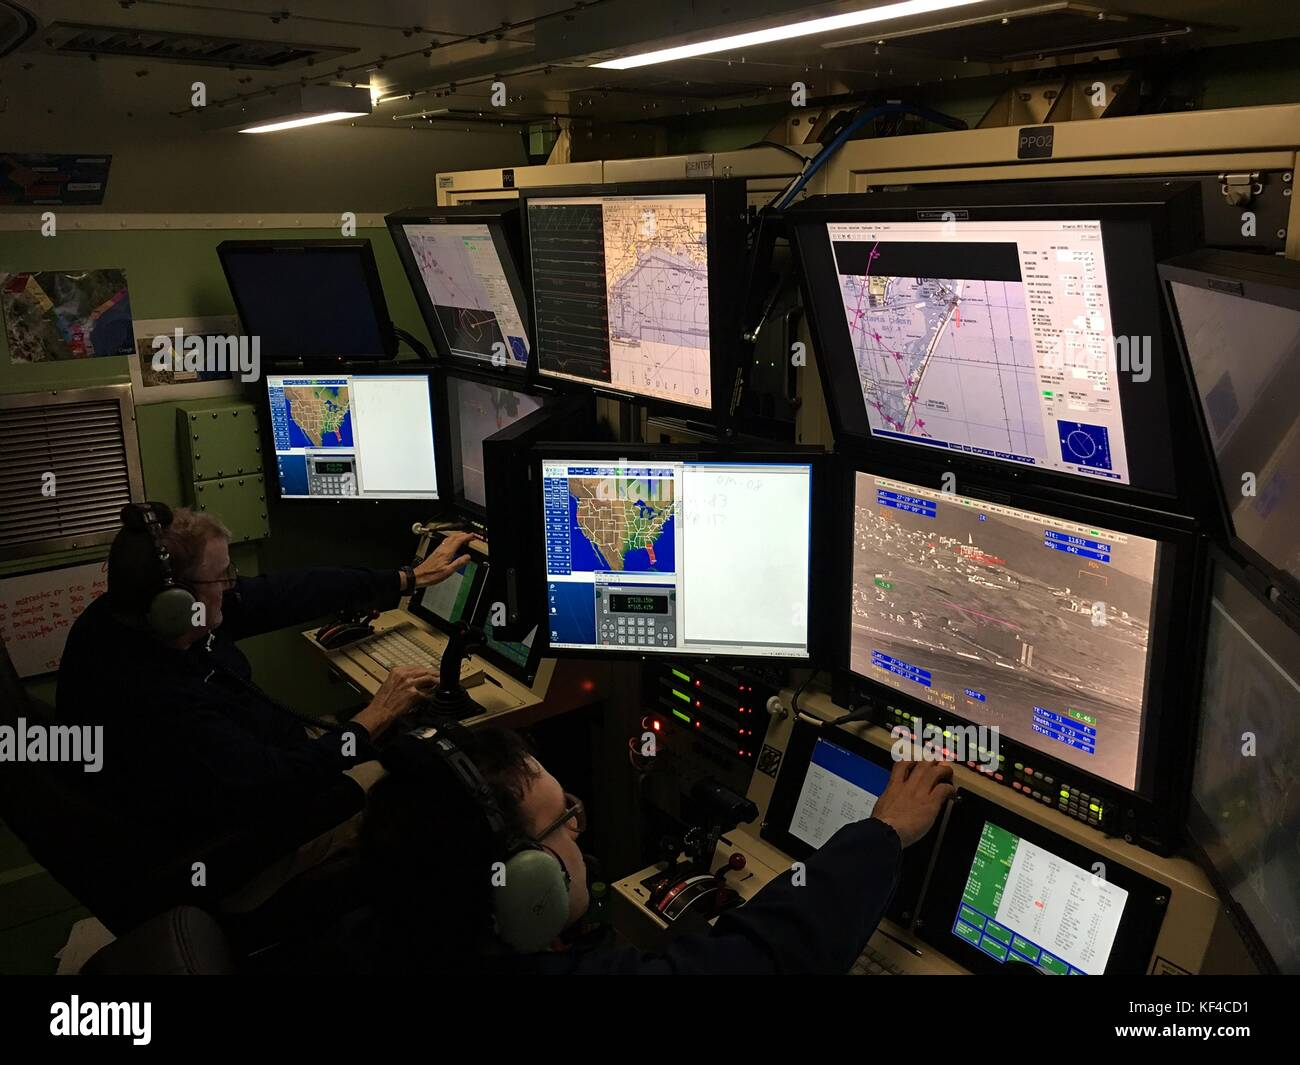 U.S. Customs and Border Protection agents operate an unmanned aircraft system from a control room to collect radar - Stock Image